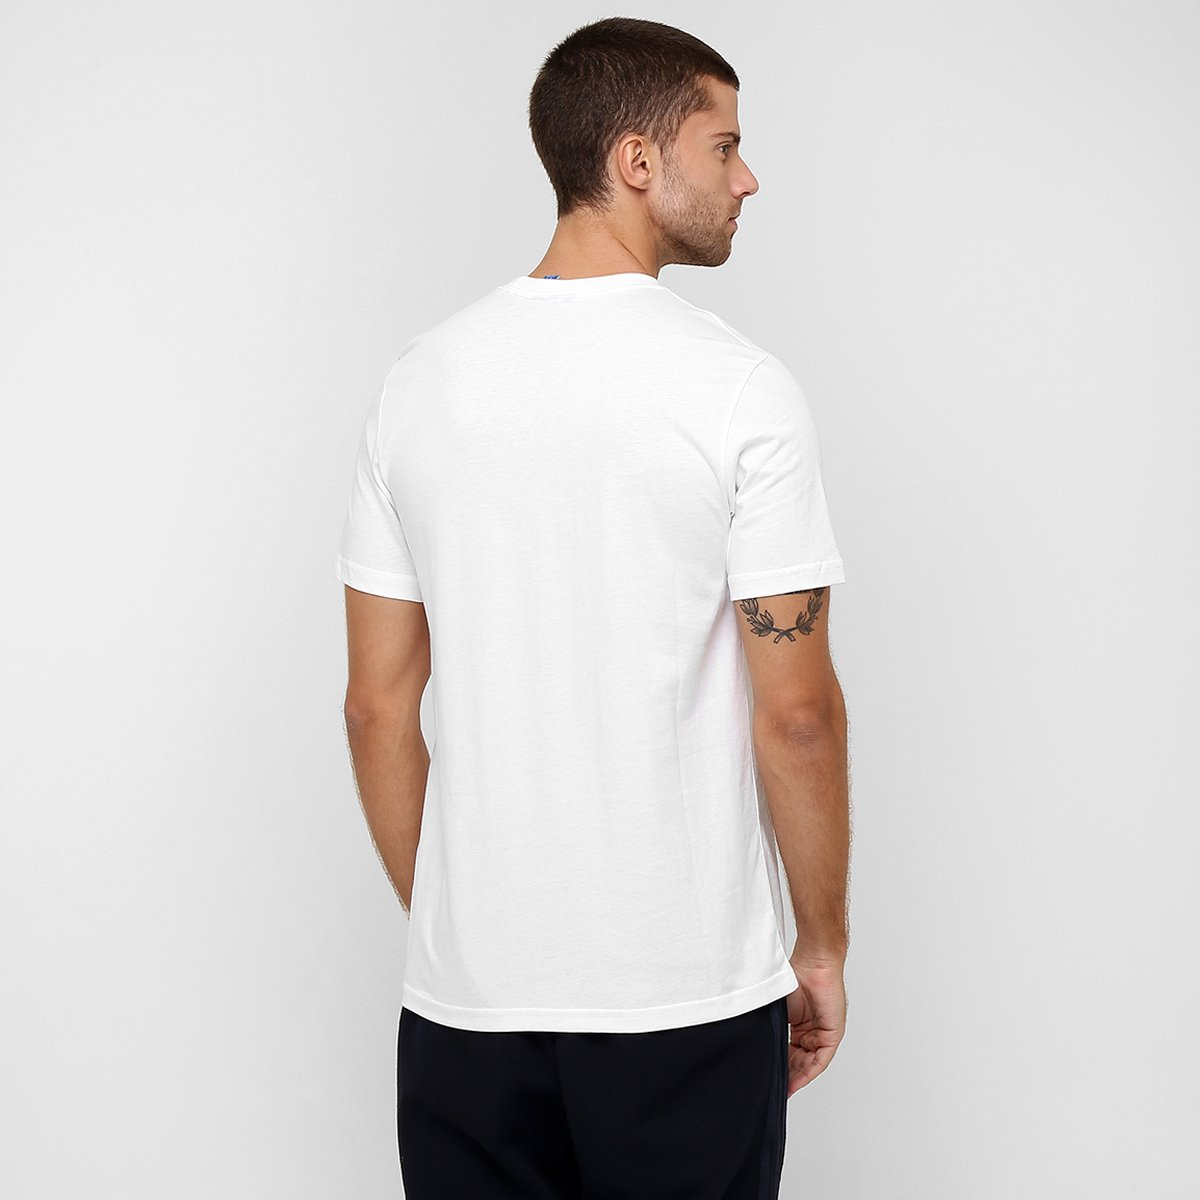 Camiseta Adidas Originals Stripes Trefoil  Camiseta Adidas Originals Stripes  Trefoil ... e55970bf96bd9